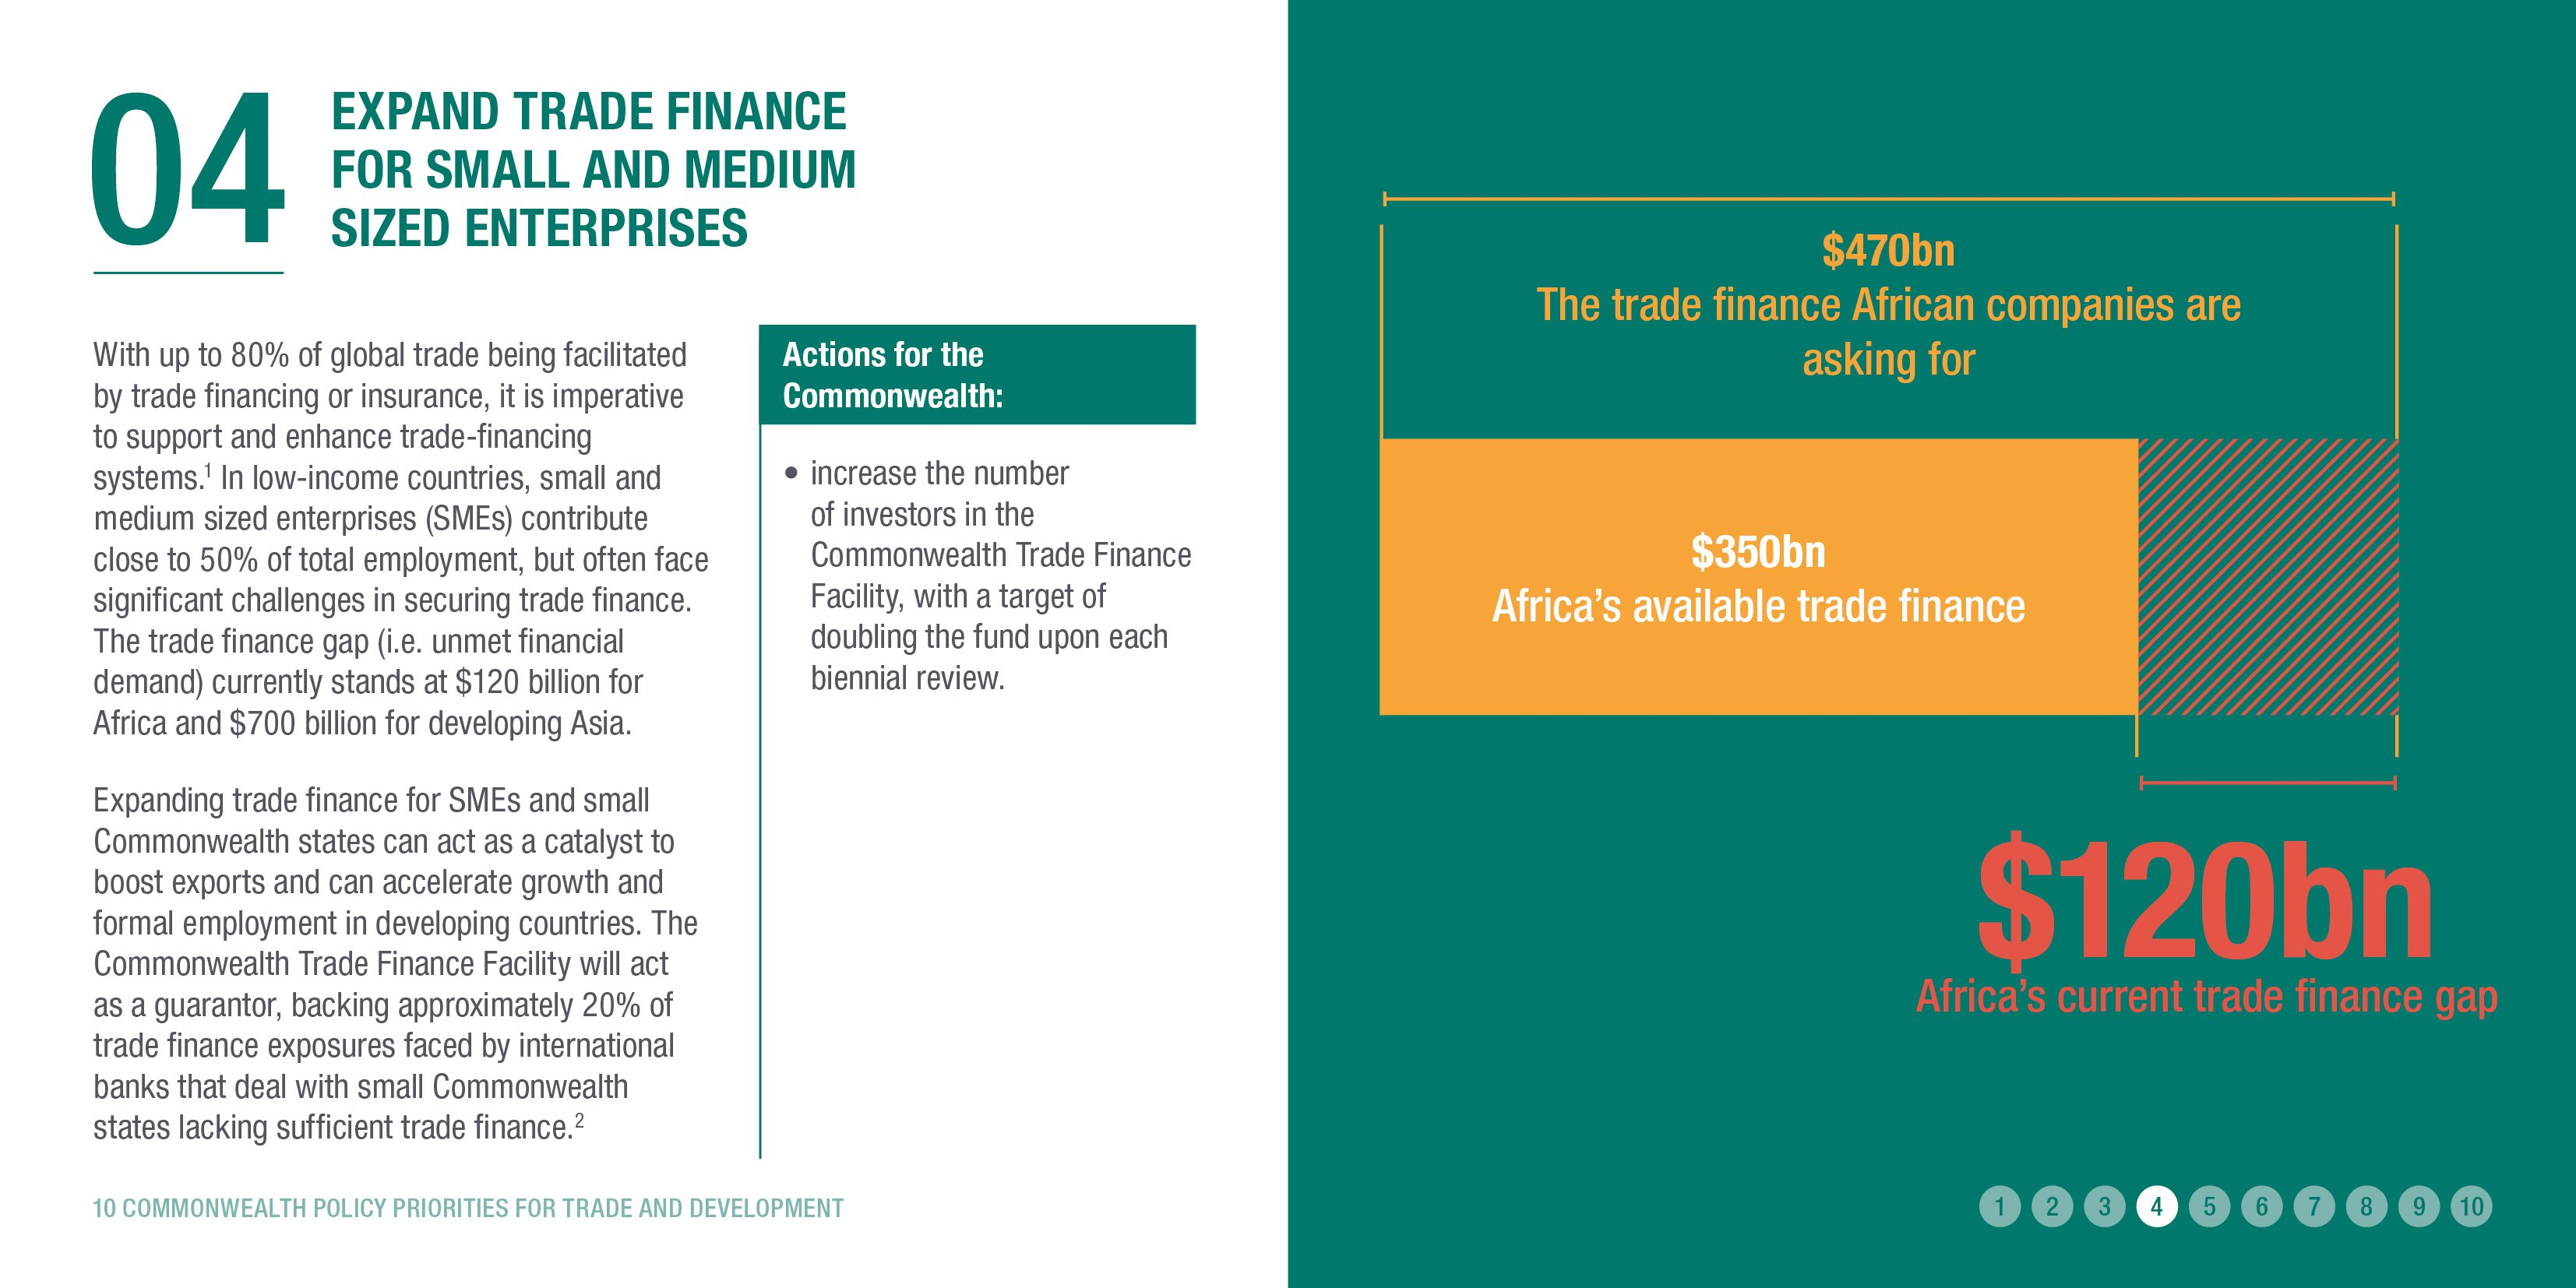 Expand trade finance for small and medium sized enterprises